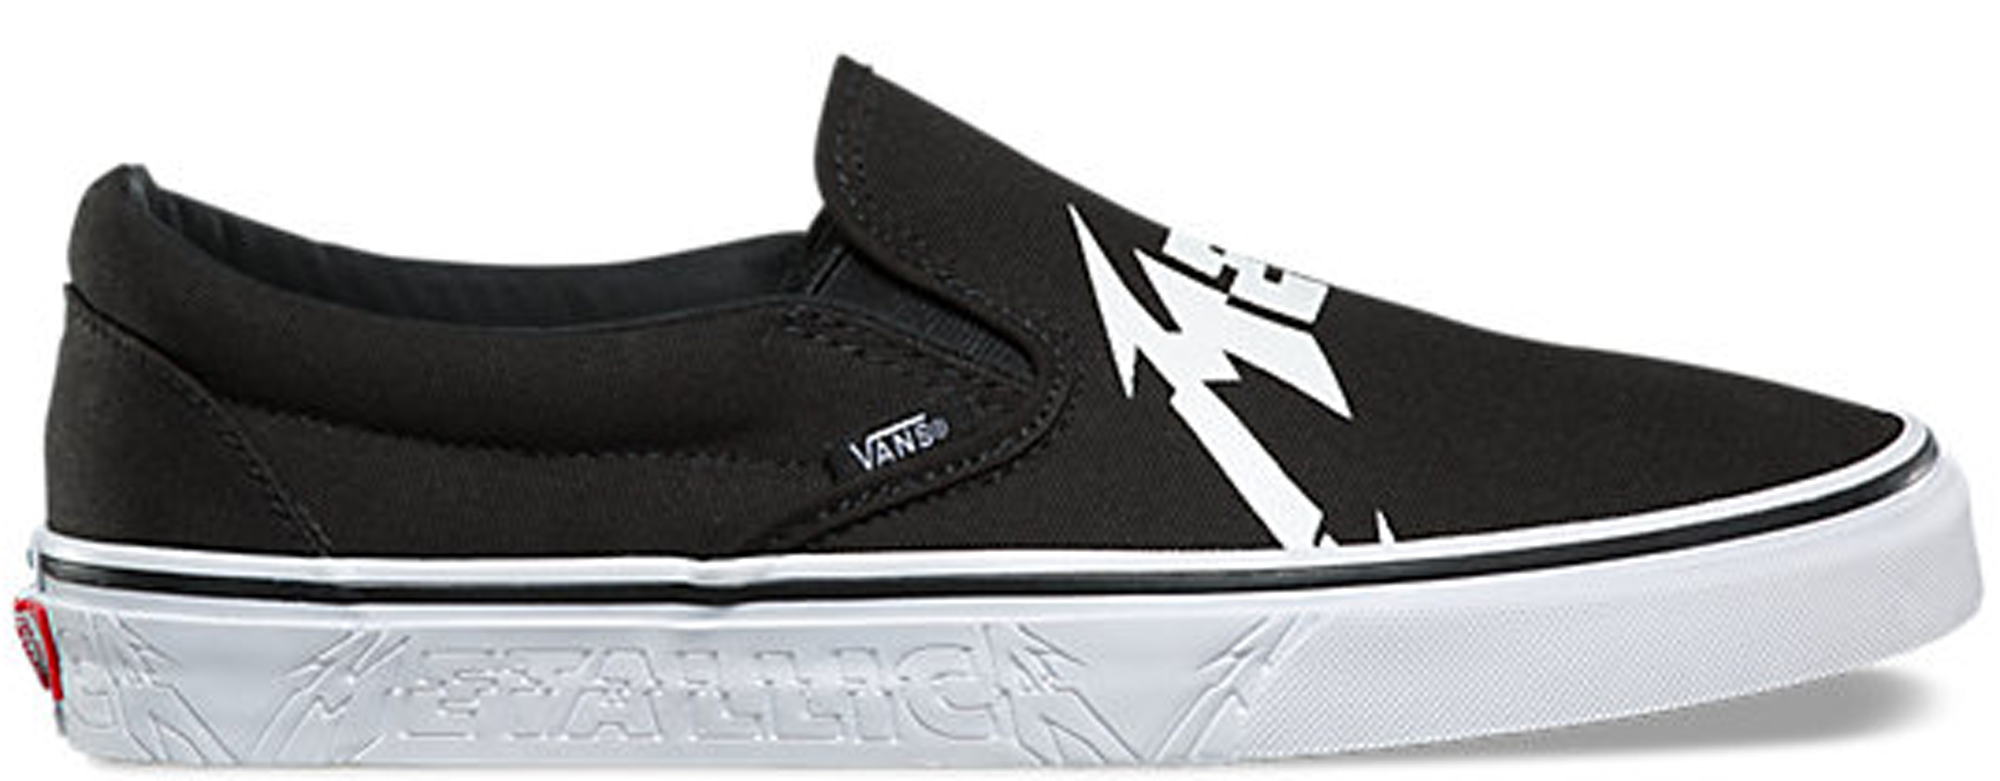 vans metallica version